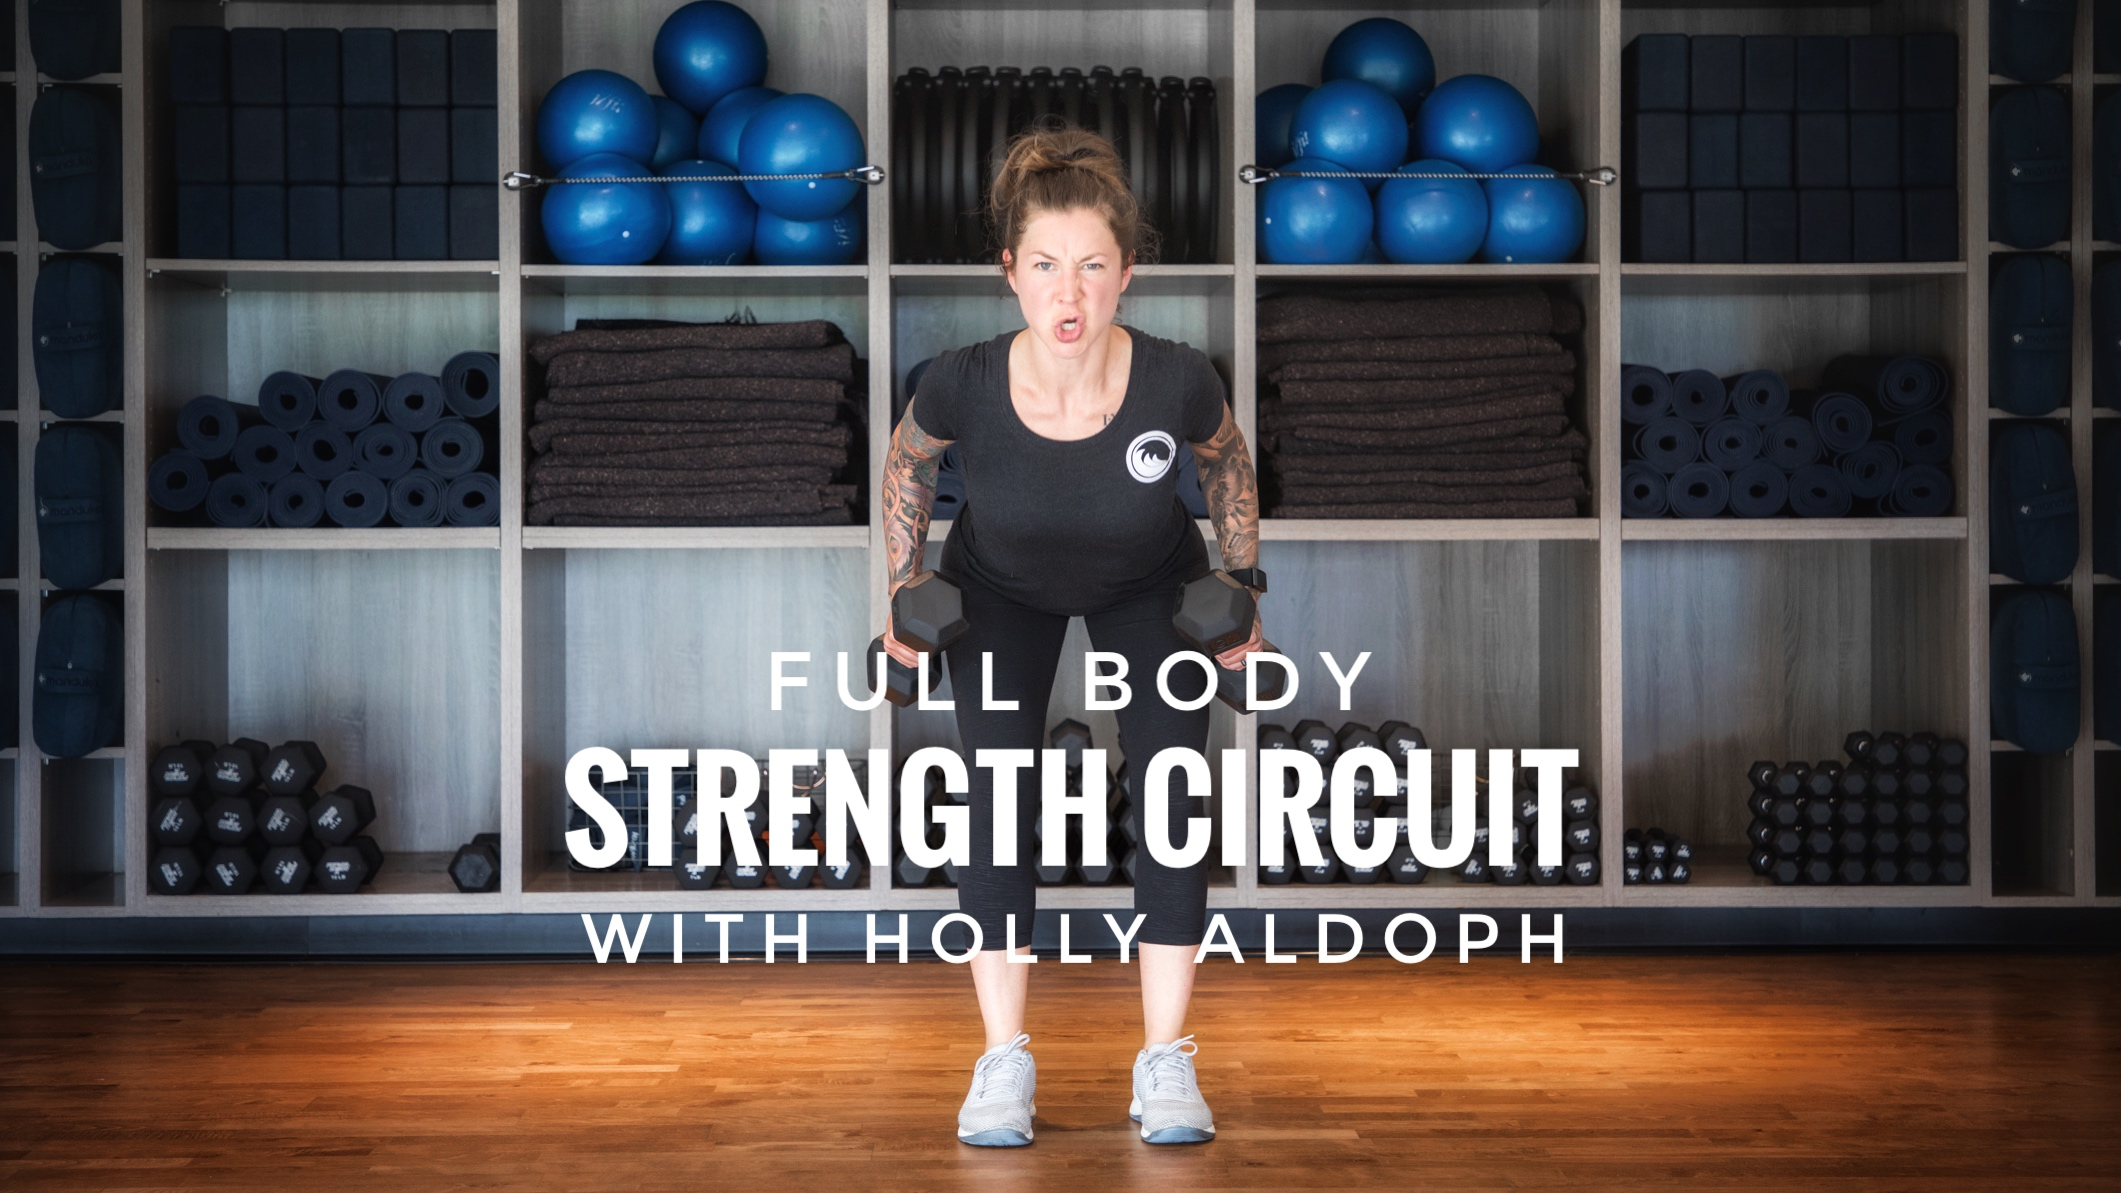 Full Body Strength Circuit with Holly Aldoph